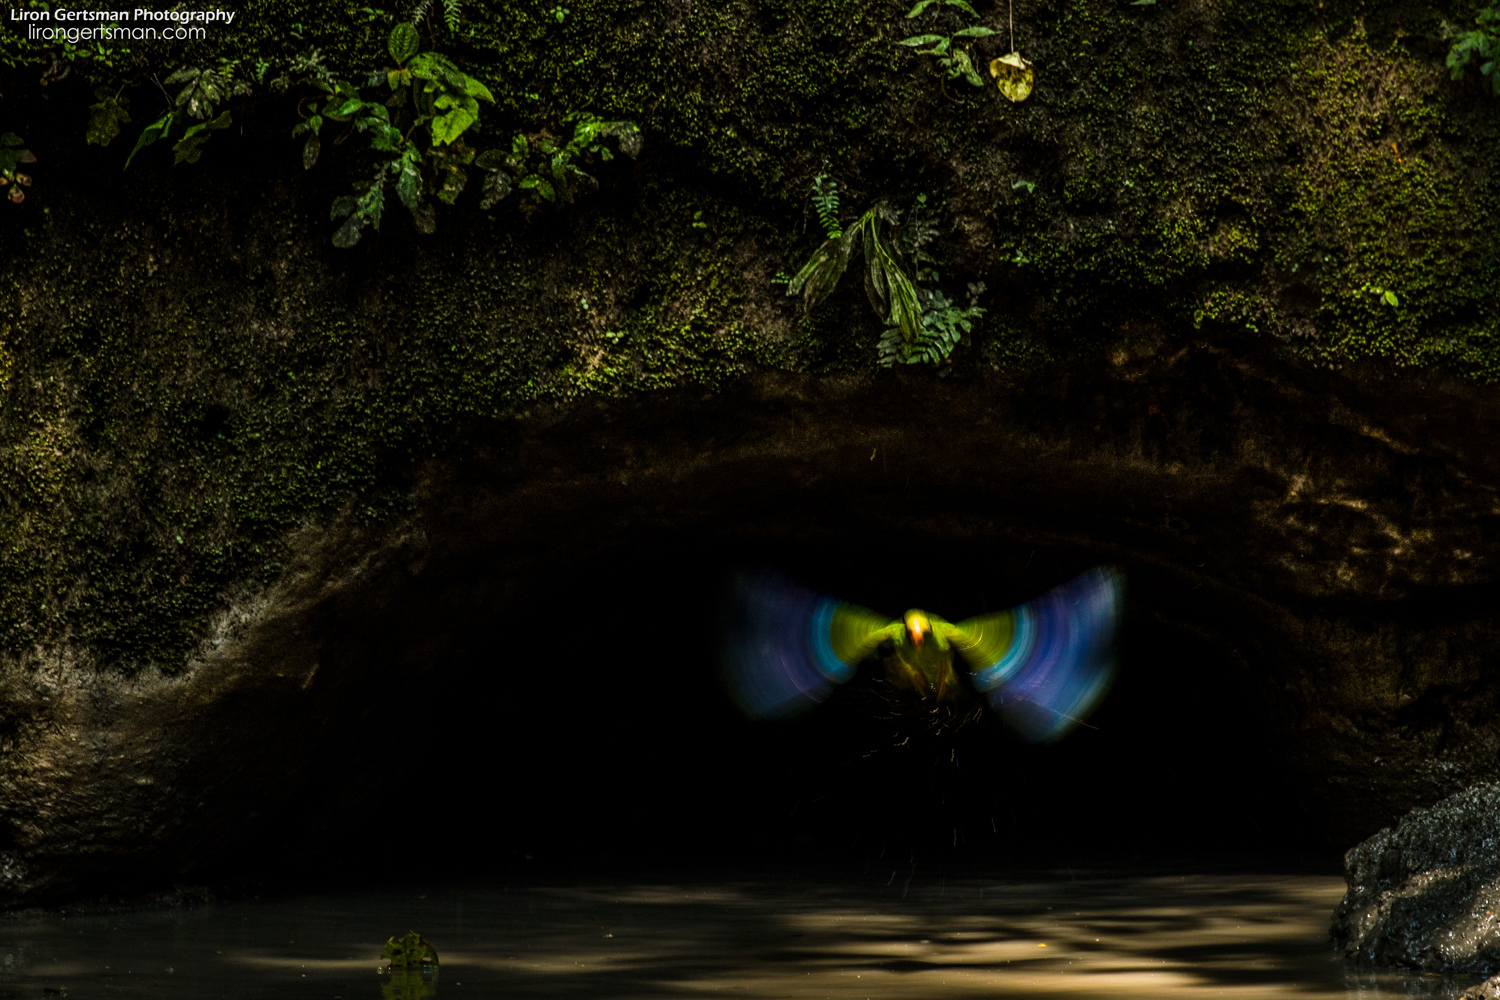 The final parakeet departs from under the arch, heading to join its flock in the canopy.